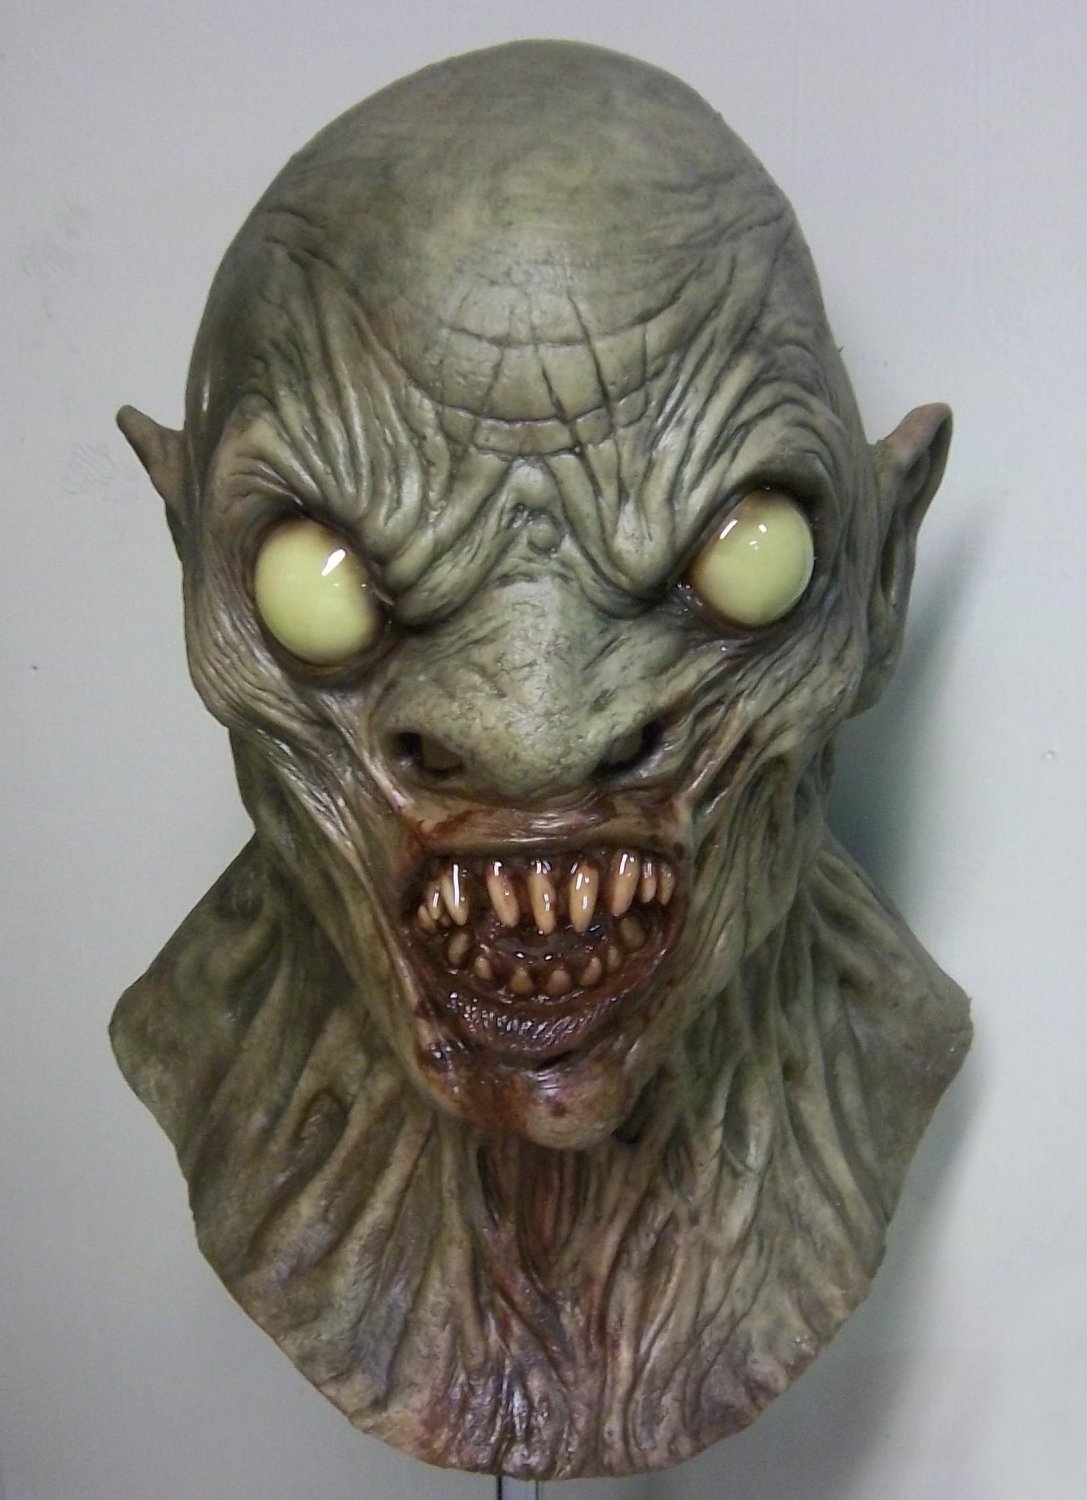 CHUD Sewer Monster Cannibalistic Humanoid Underground Dweller Monster Creature Scary Halloween Mask